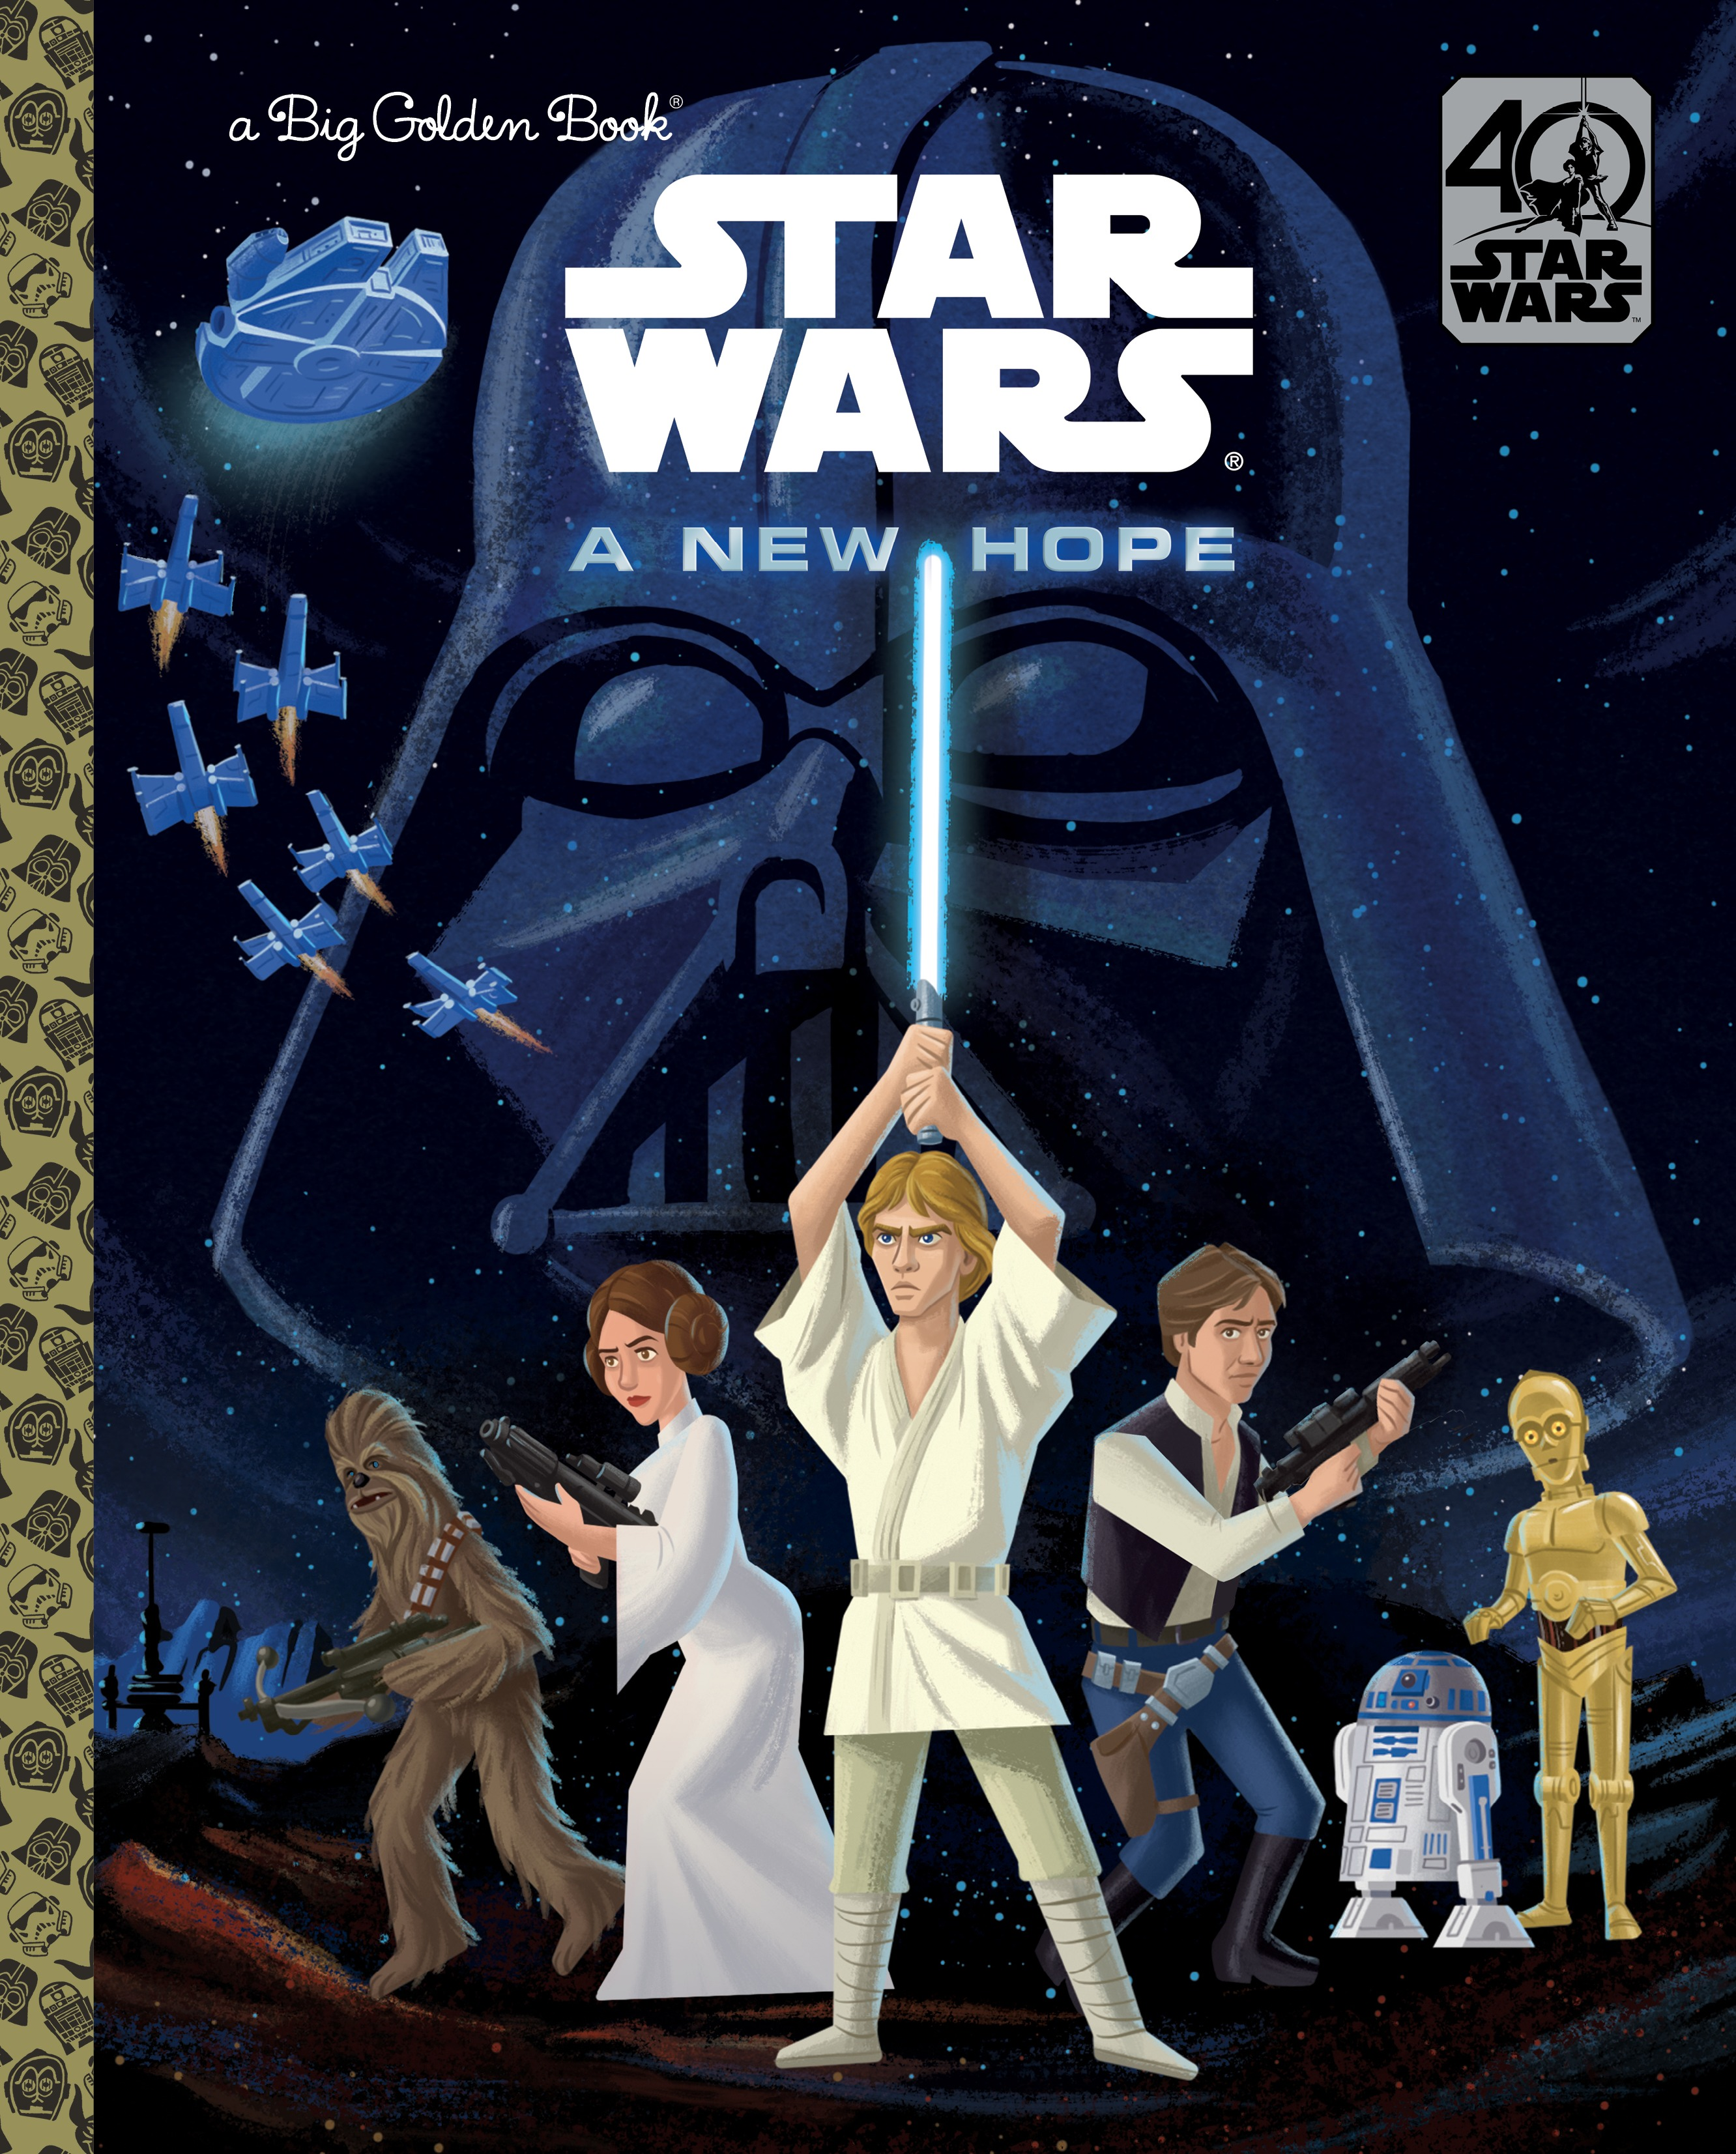 Star Wars: A New Hope - A Big Golden Book